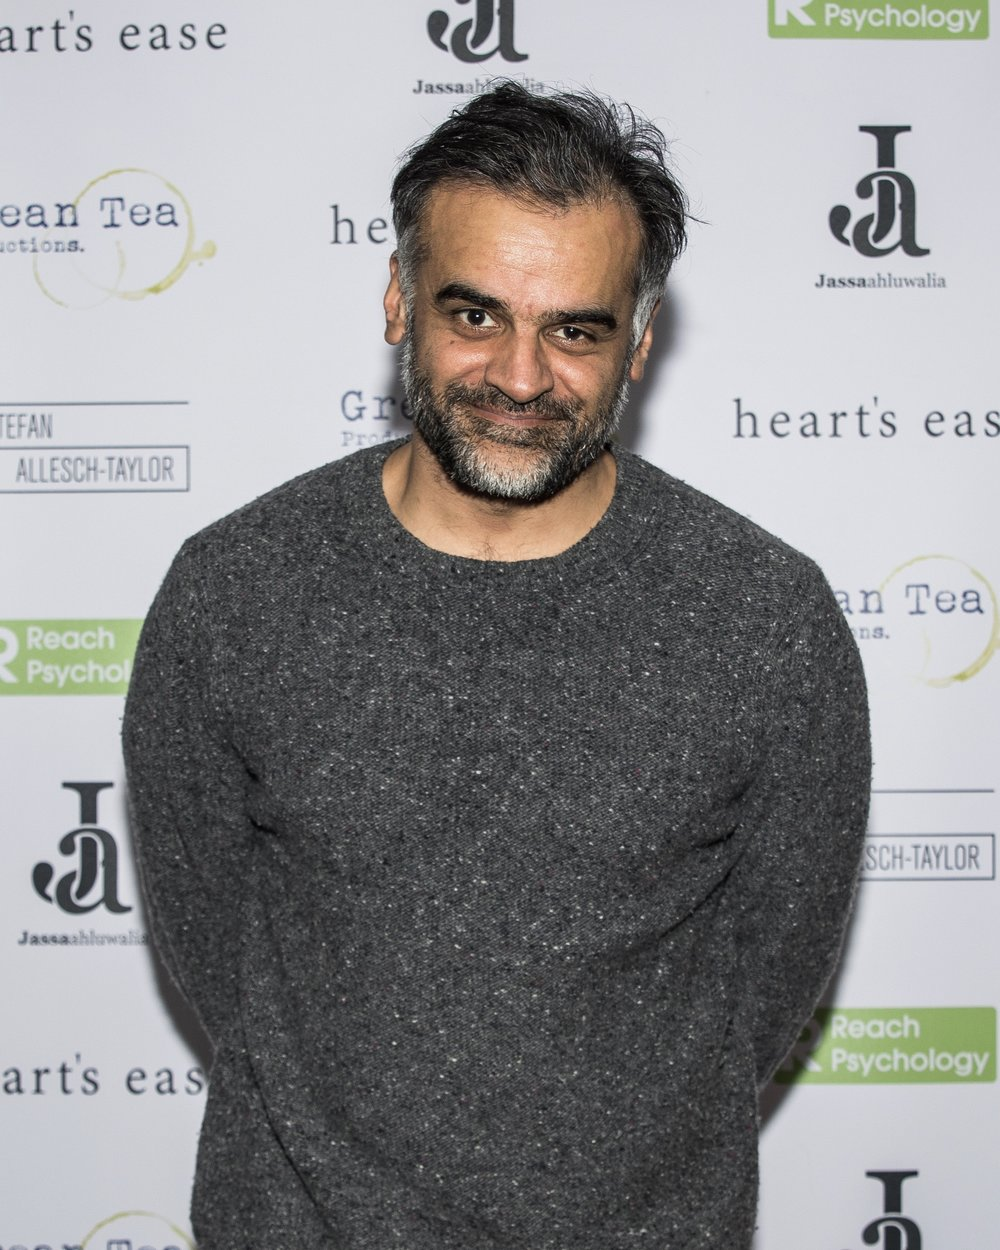 Sartaj Garewal attends the cast and crew screening of Heart's Ease.